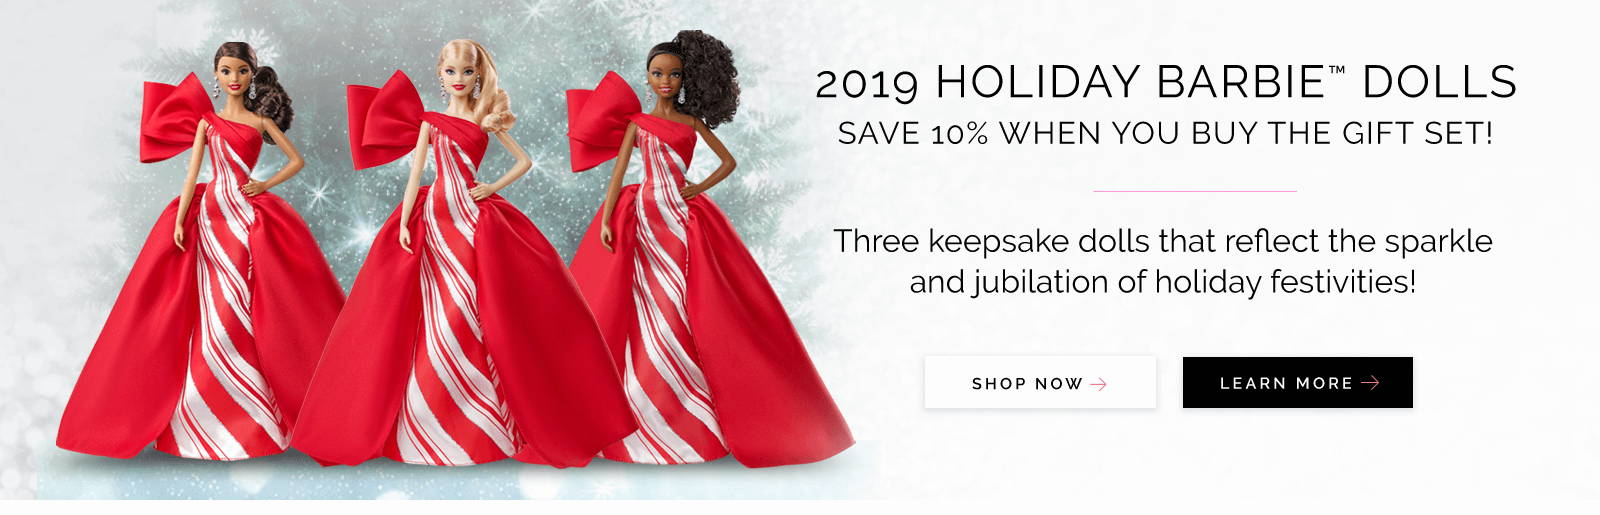 Shop 2019 Holiday Barbie